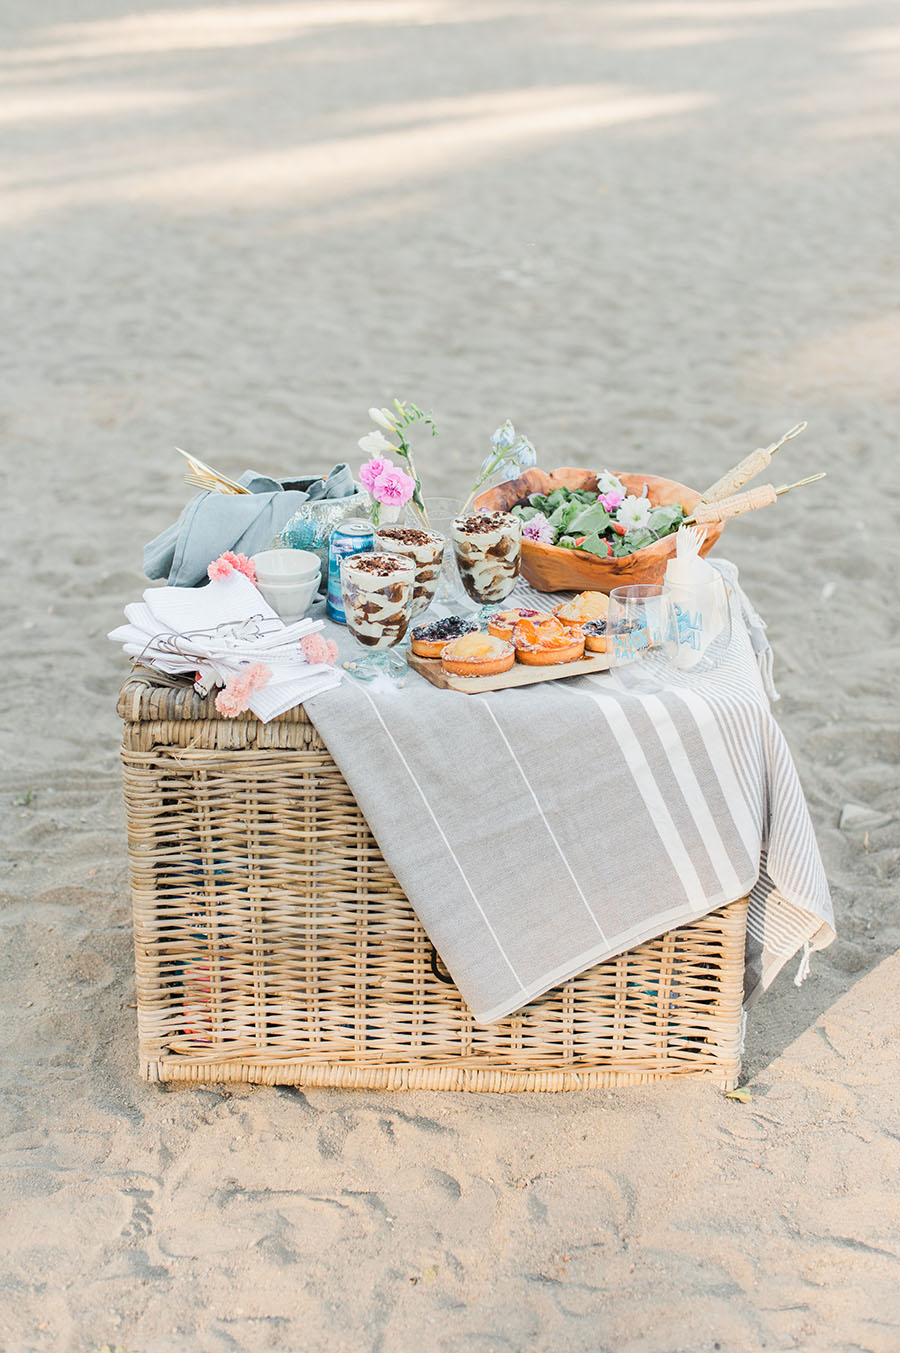 ideas-for-picnic-on-the-beach